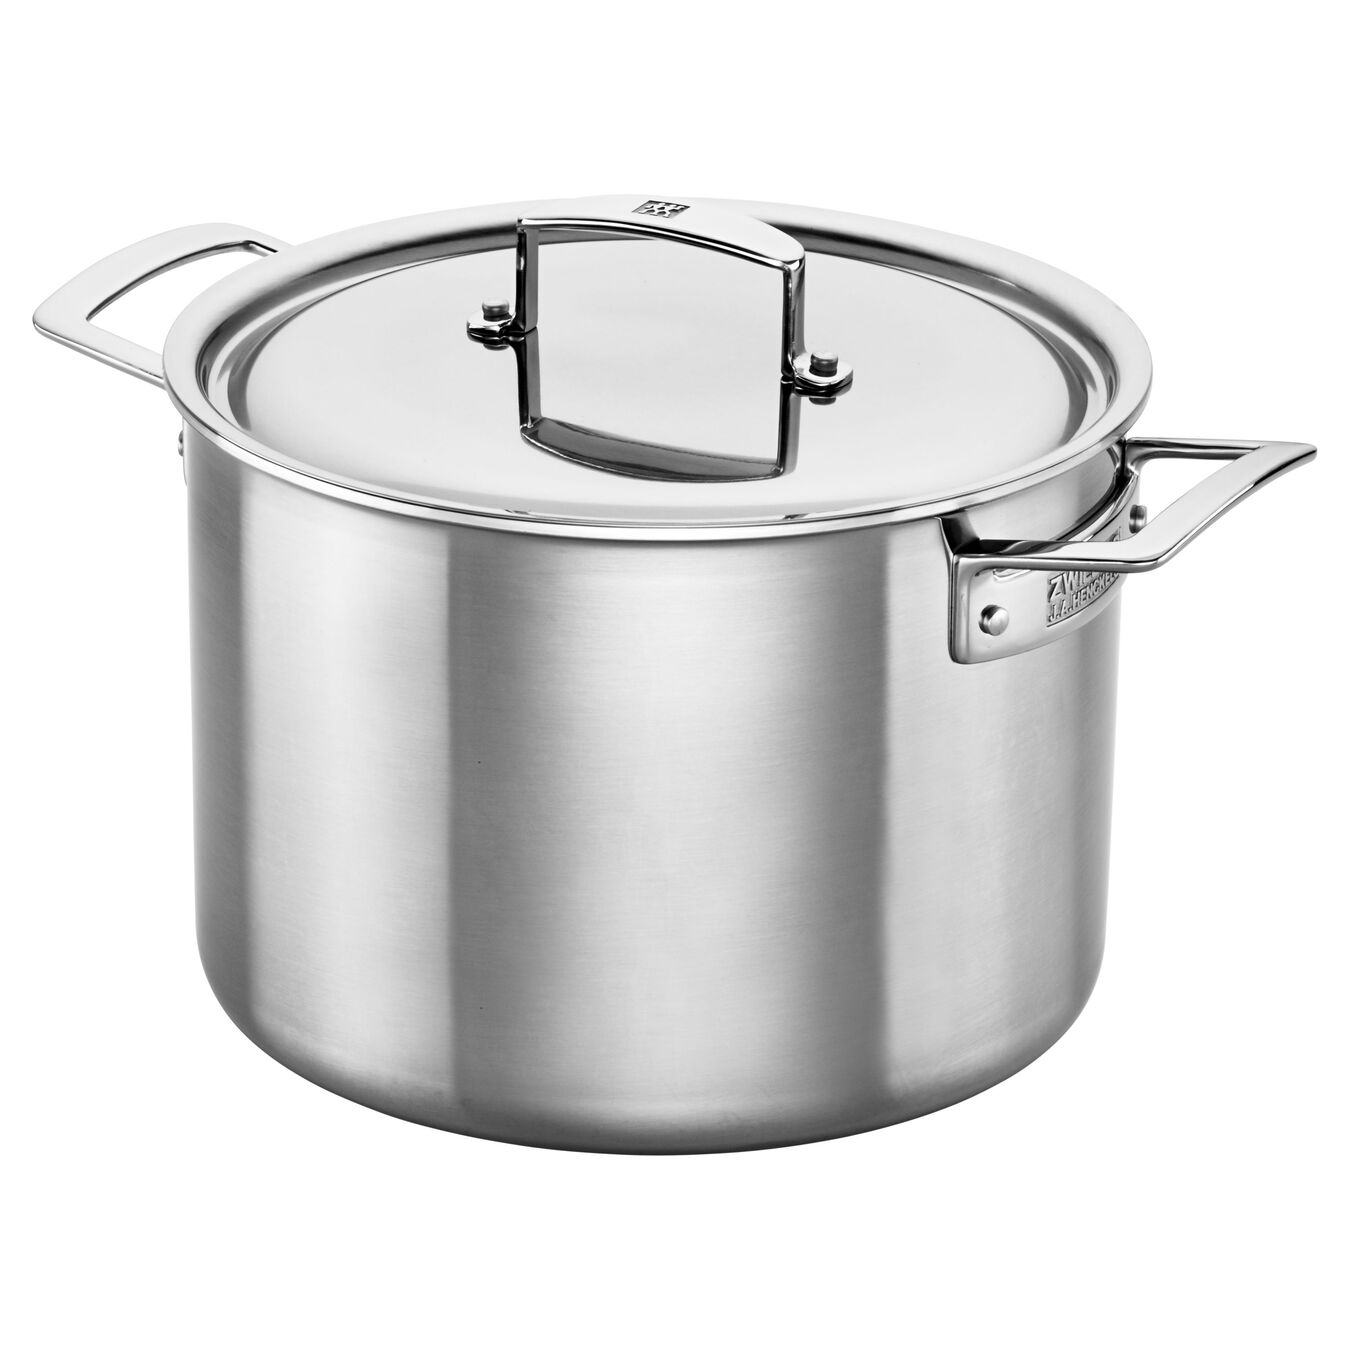 Stainless Steel 8-Qt. Stockpot,,large 1